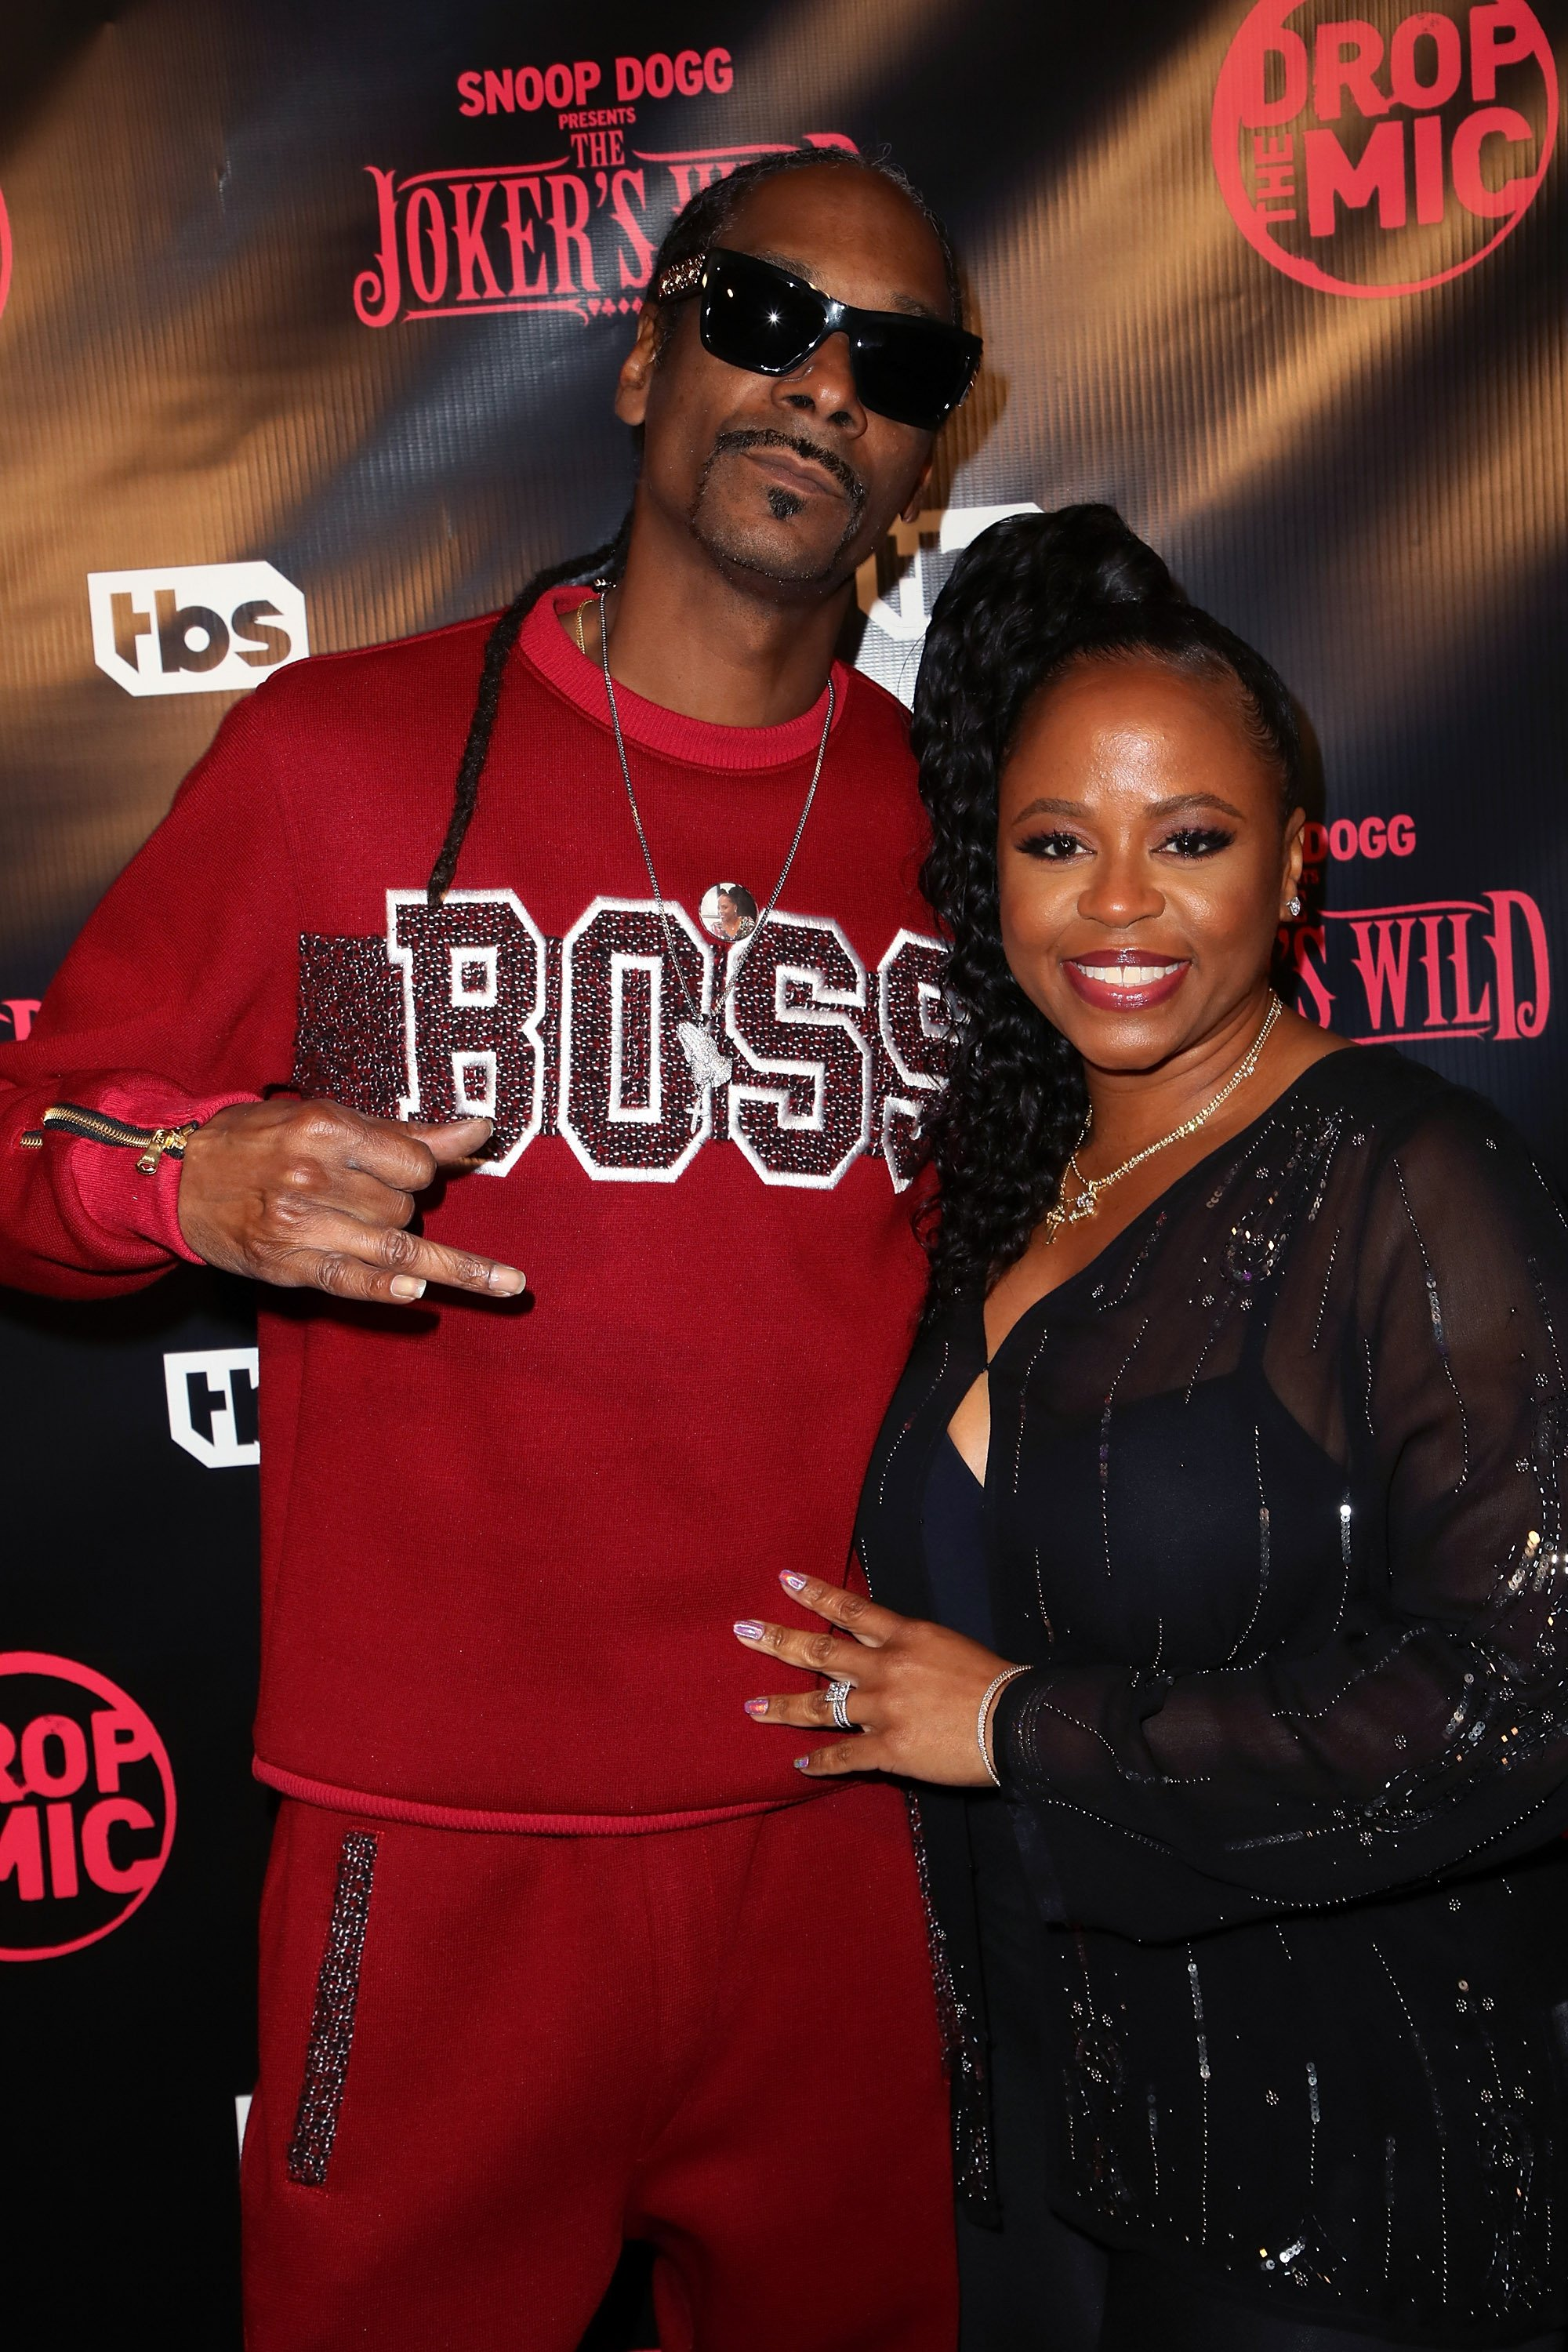 """Snoop Dogg & Shante Broadus at the premiere for """"Drop The Mic"""" and """"The Joker's Wild"""" on Oct. 11, 2017.   Photo: Getty Images"""